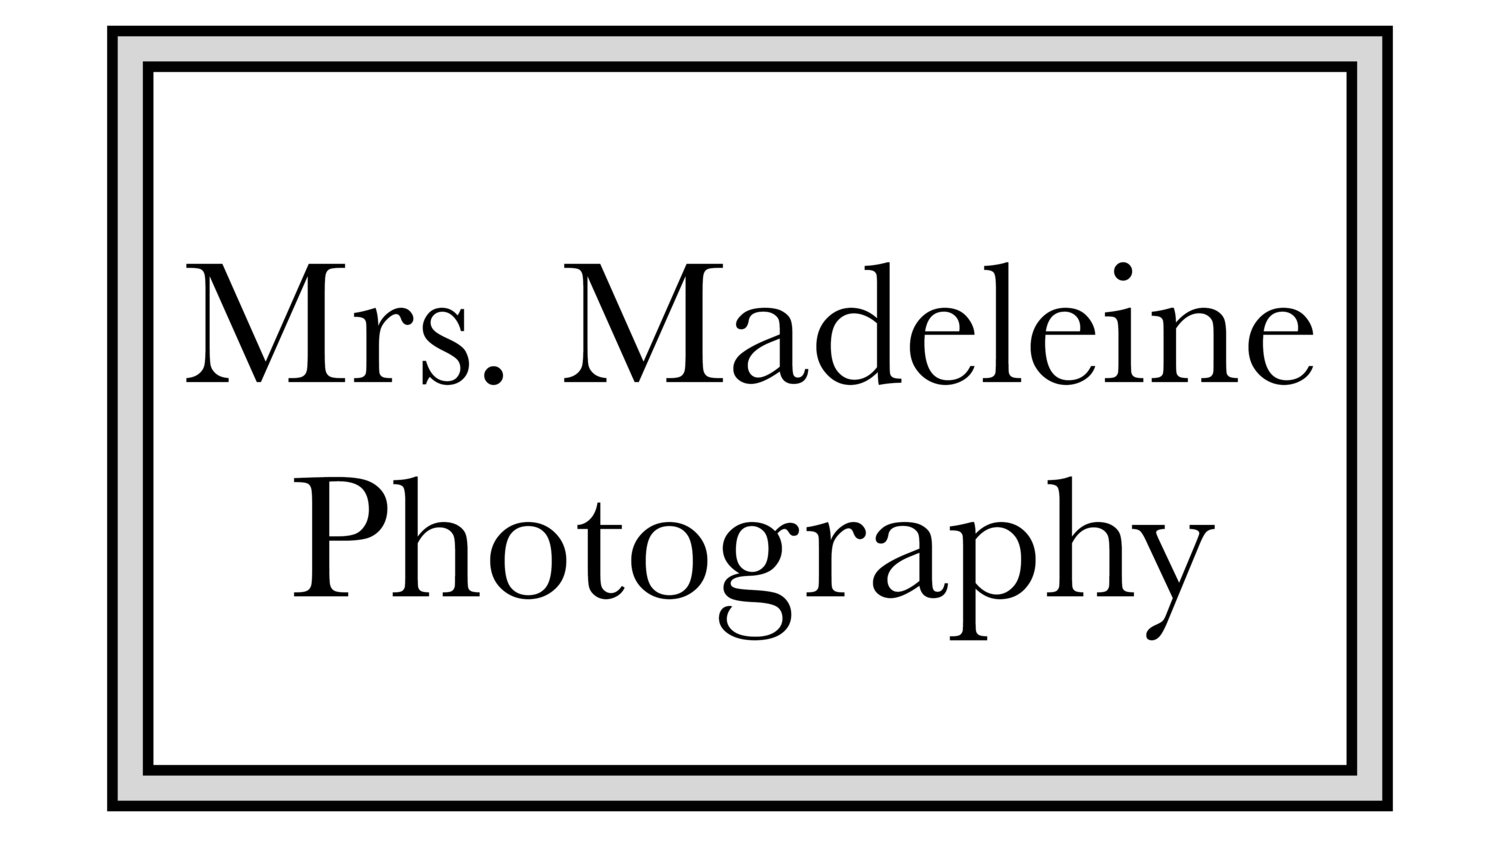 Mrs. Madeleine Photography